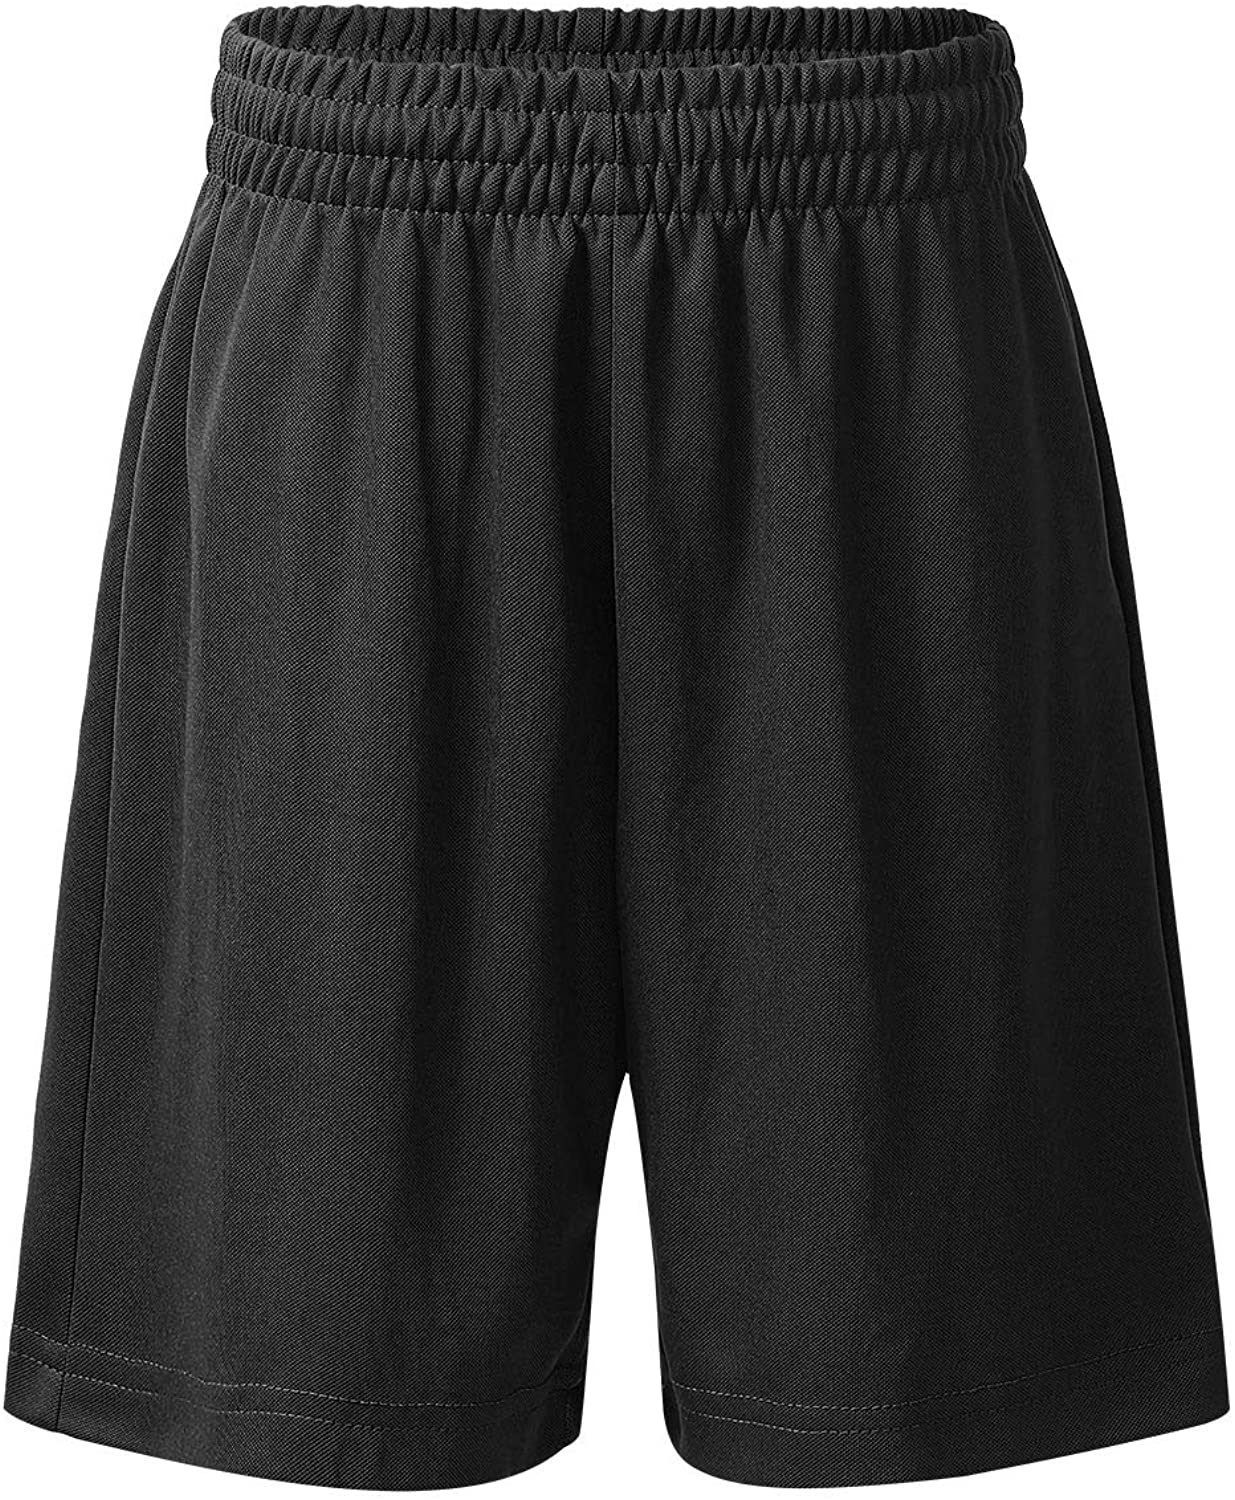 moily Unisex Boys Girls Stretchy Waistband Solid Loose Athletic Shorts for Sports/Workout/Dance